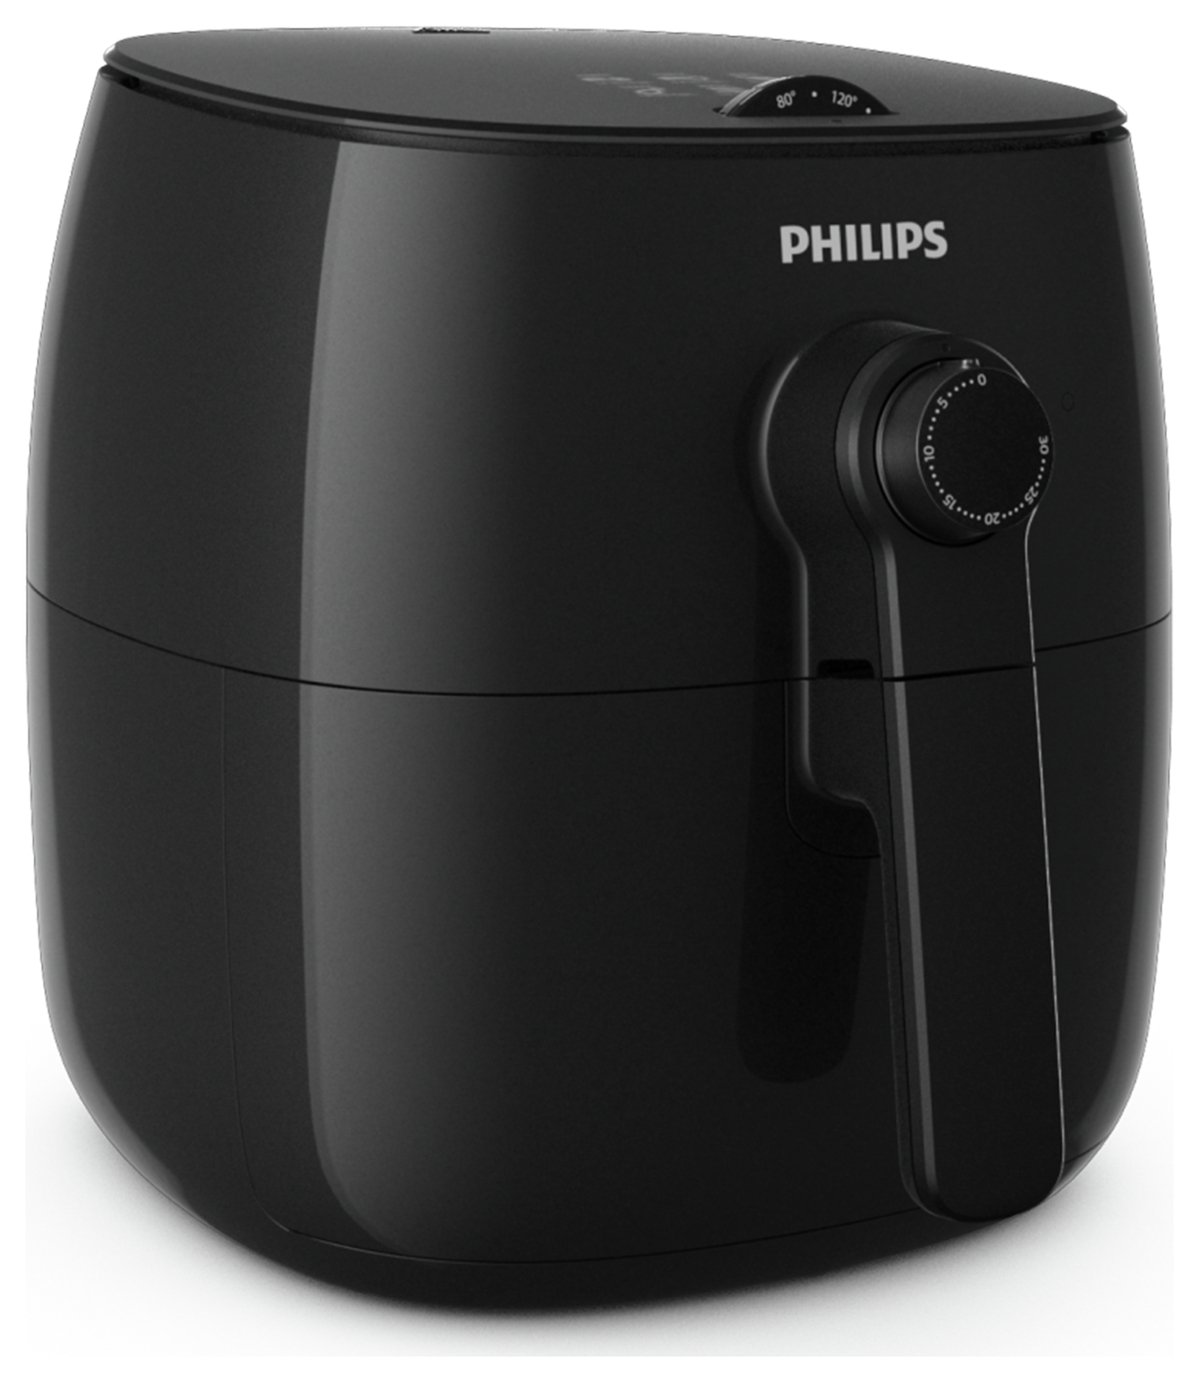 Philips Air Fryer Find It For Less